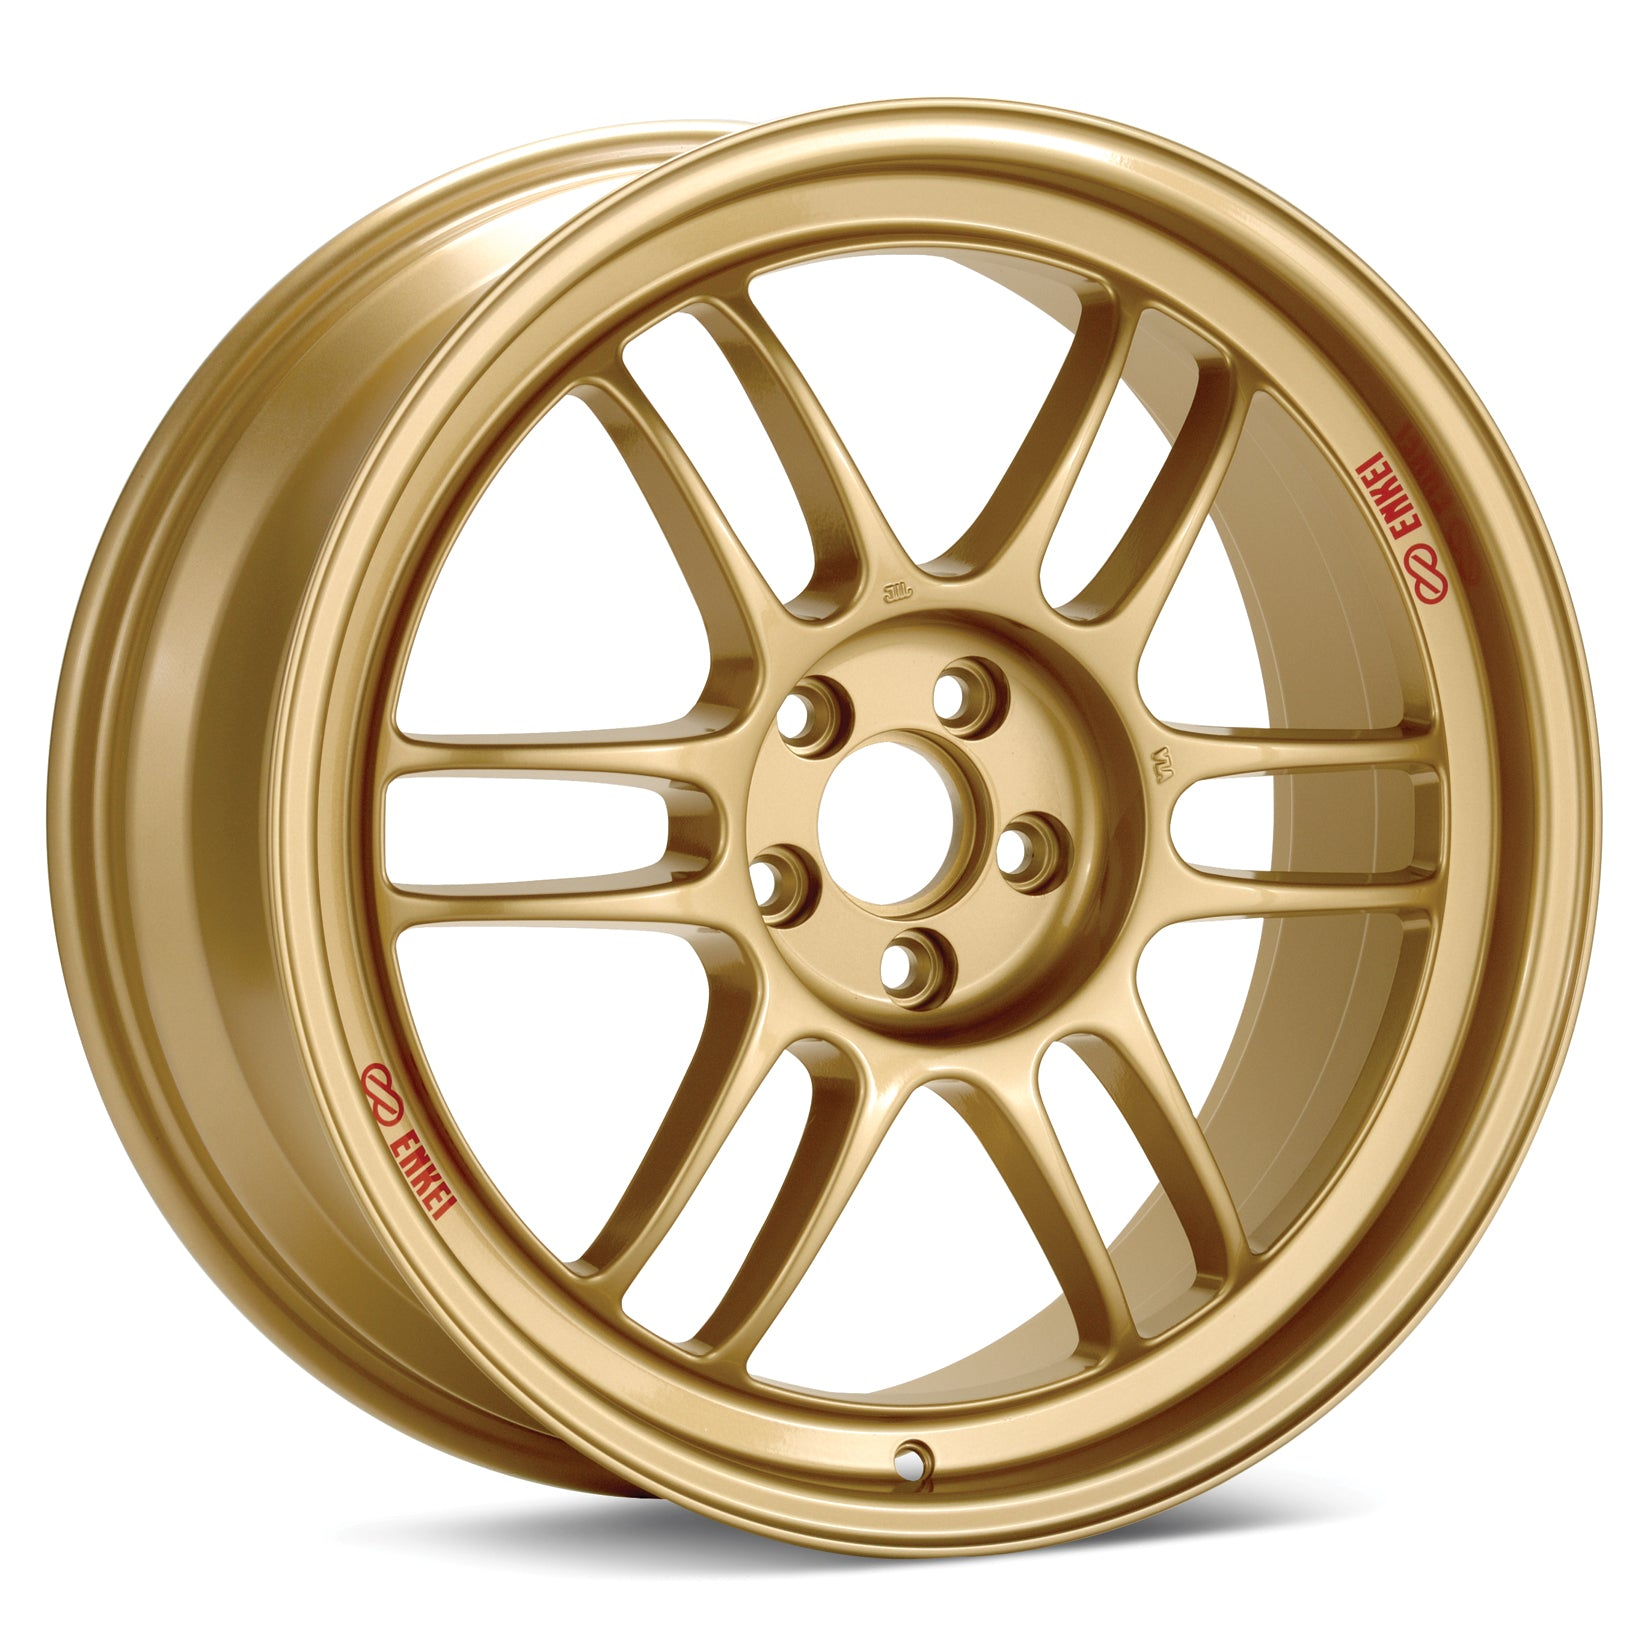 Enkei RPF1 18x8.5 40mm Offset 5x114.3 73mm Bore Gold Wheel